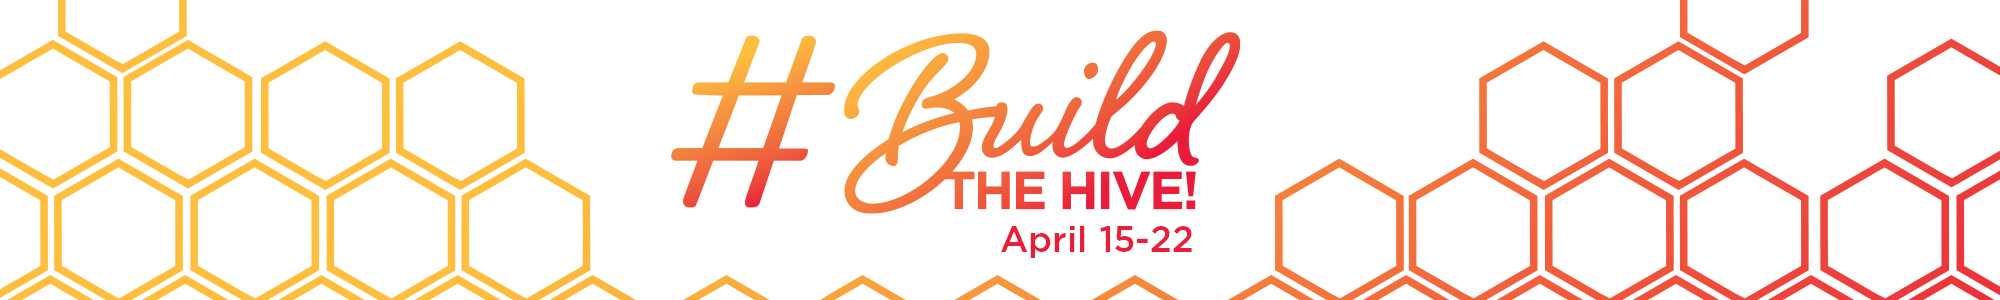 Banner Image for - Radford Build the Hive